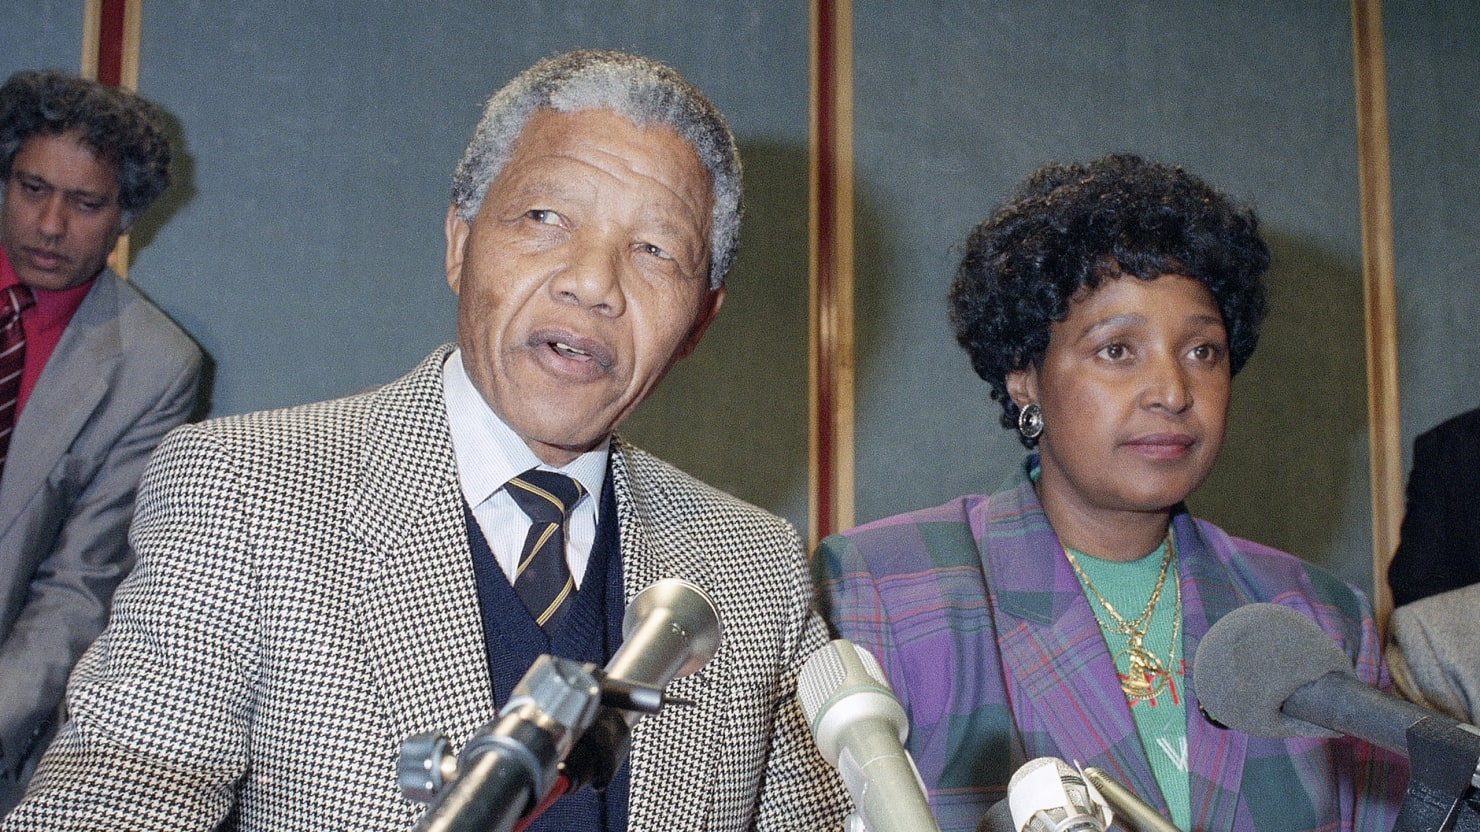 Anger at the Heart of Nelson Mandela's Violent Struggle